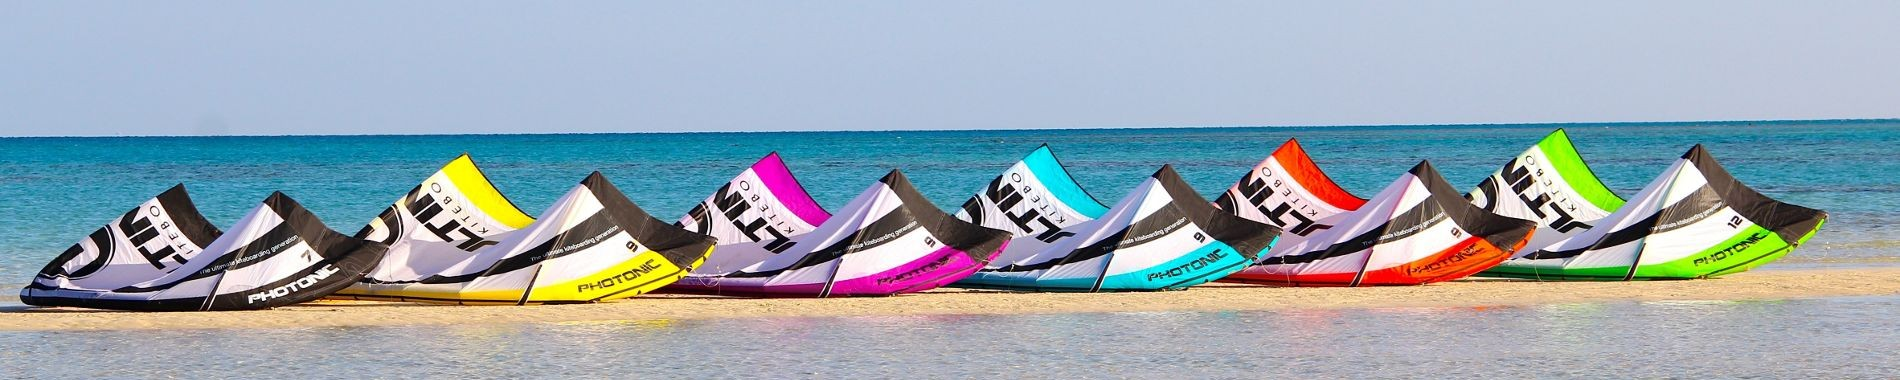 https://www.ultimate-kiteboarding.com/wp-content/uploads/2013/12/ultimatekiteboarding-1900x380.jpg